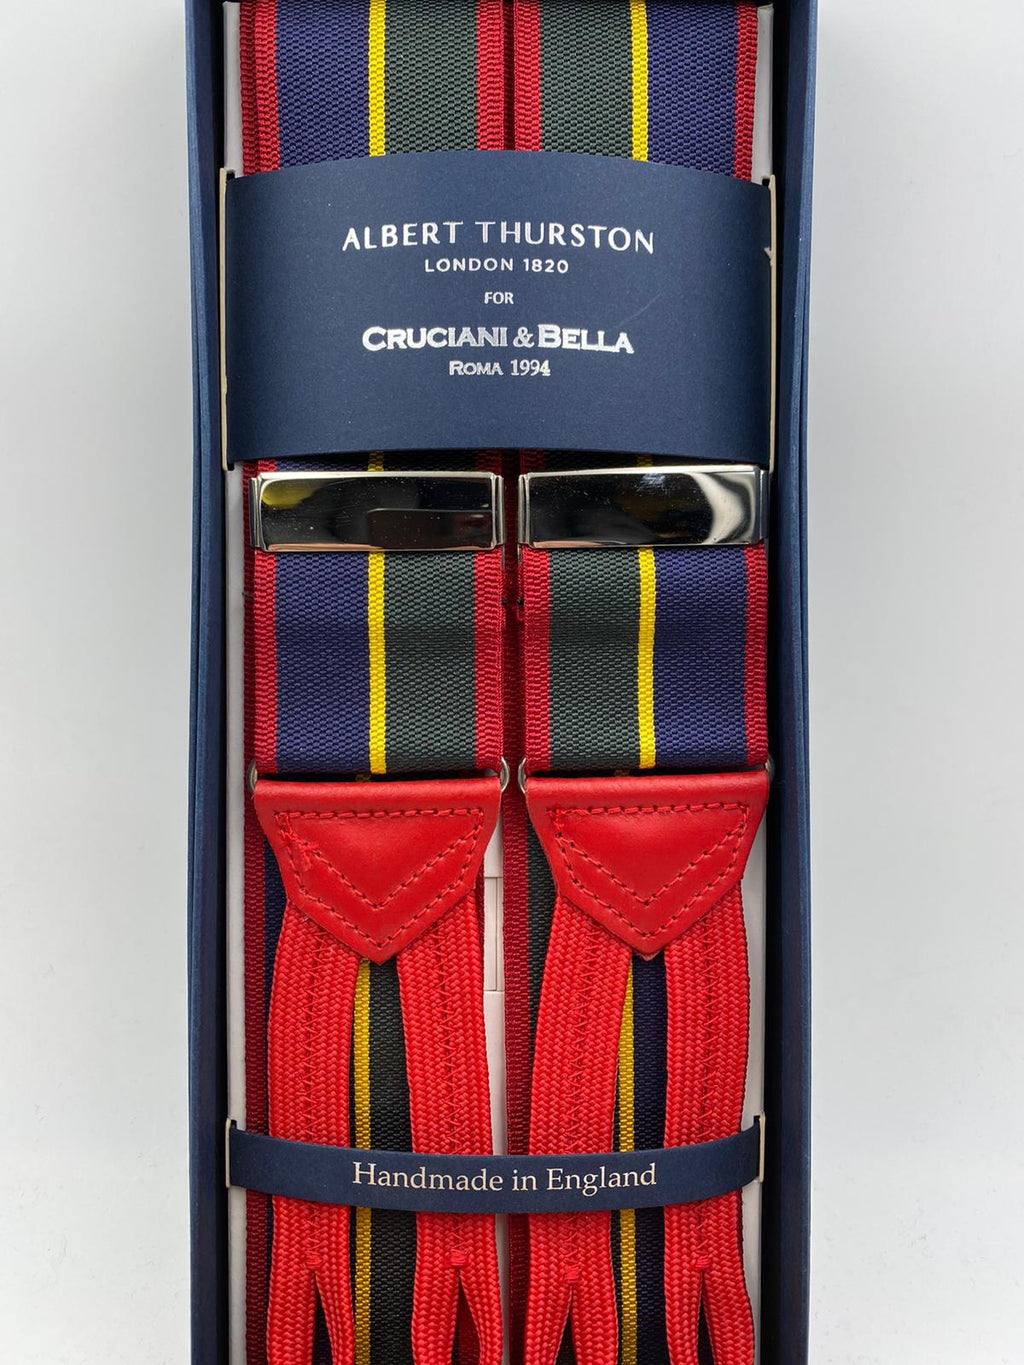 Albert Thurston for Cruciani & Bella Made in England Adjustable Sizing Blue, green, yellow and red stripes braces 40 mm Woven Barathea  Braid ends Y-Shaped Nickel Fittings Size: XL #4299